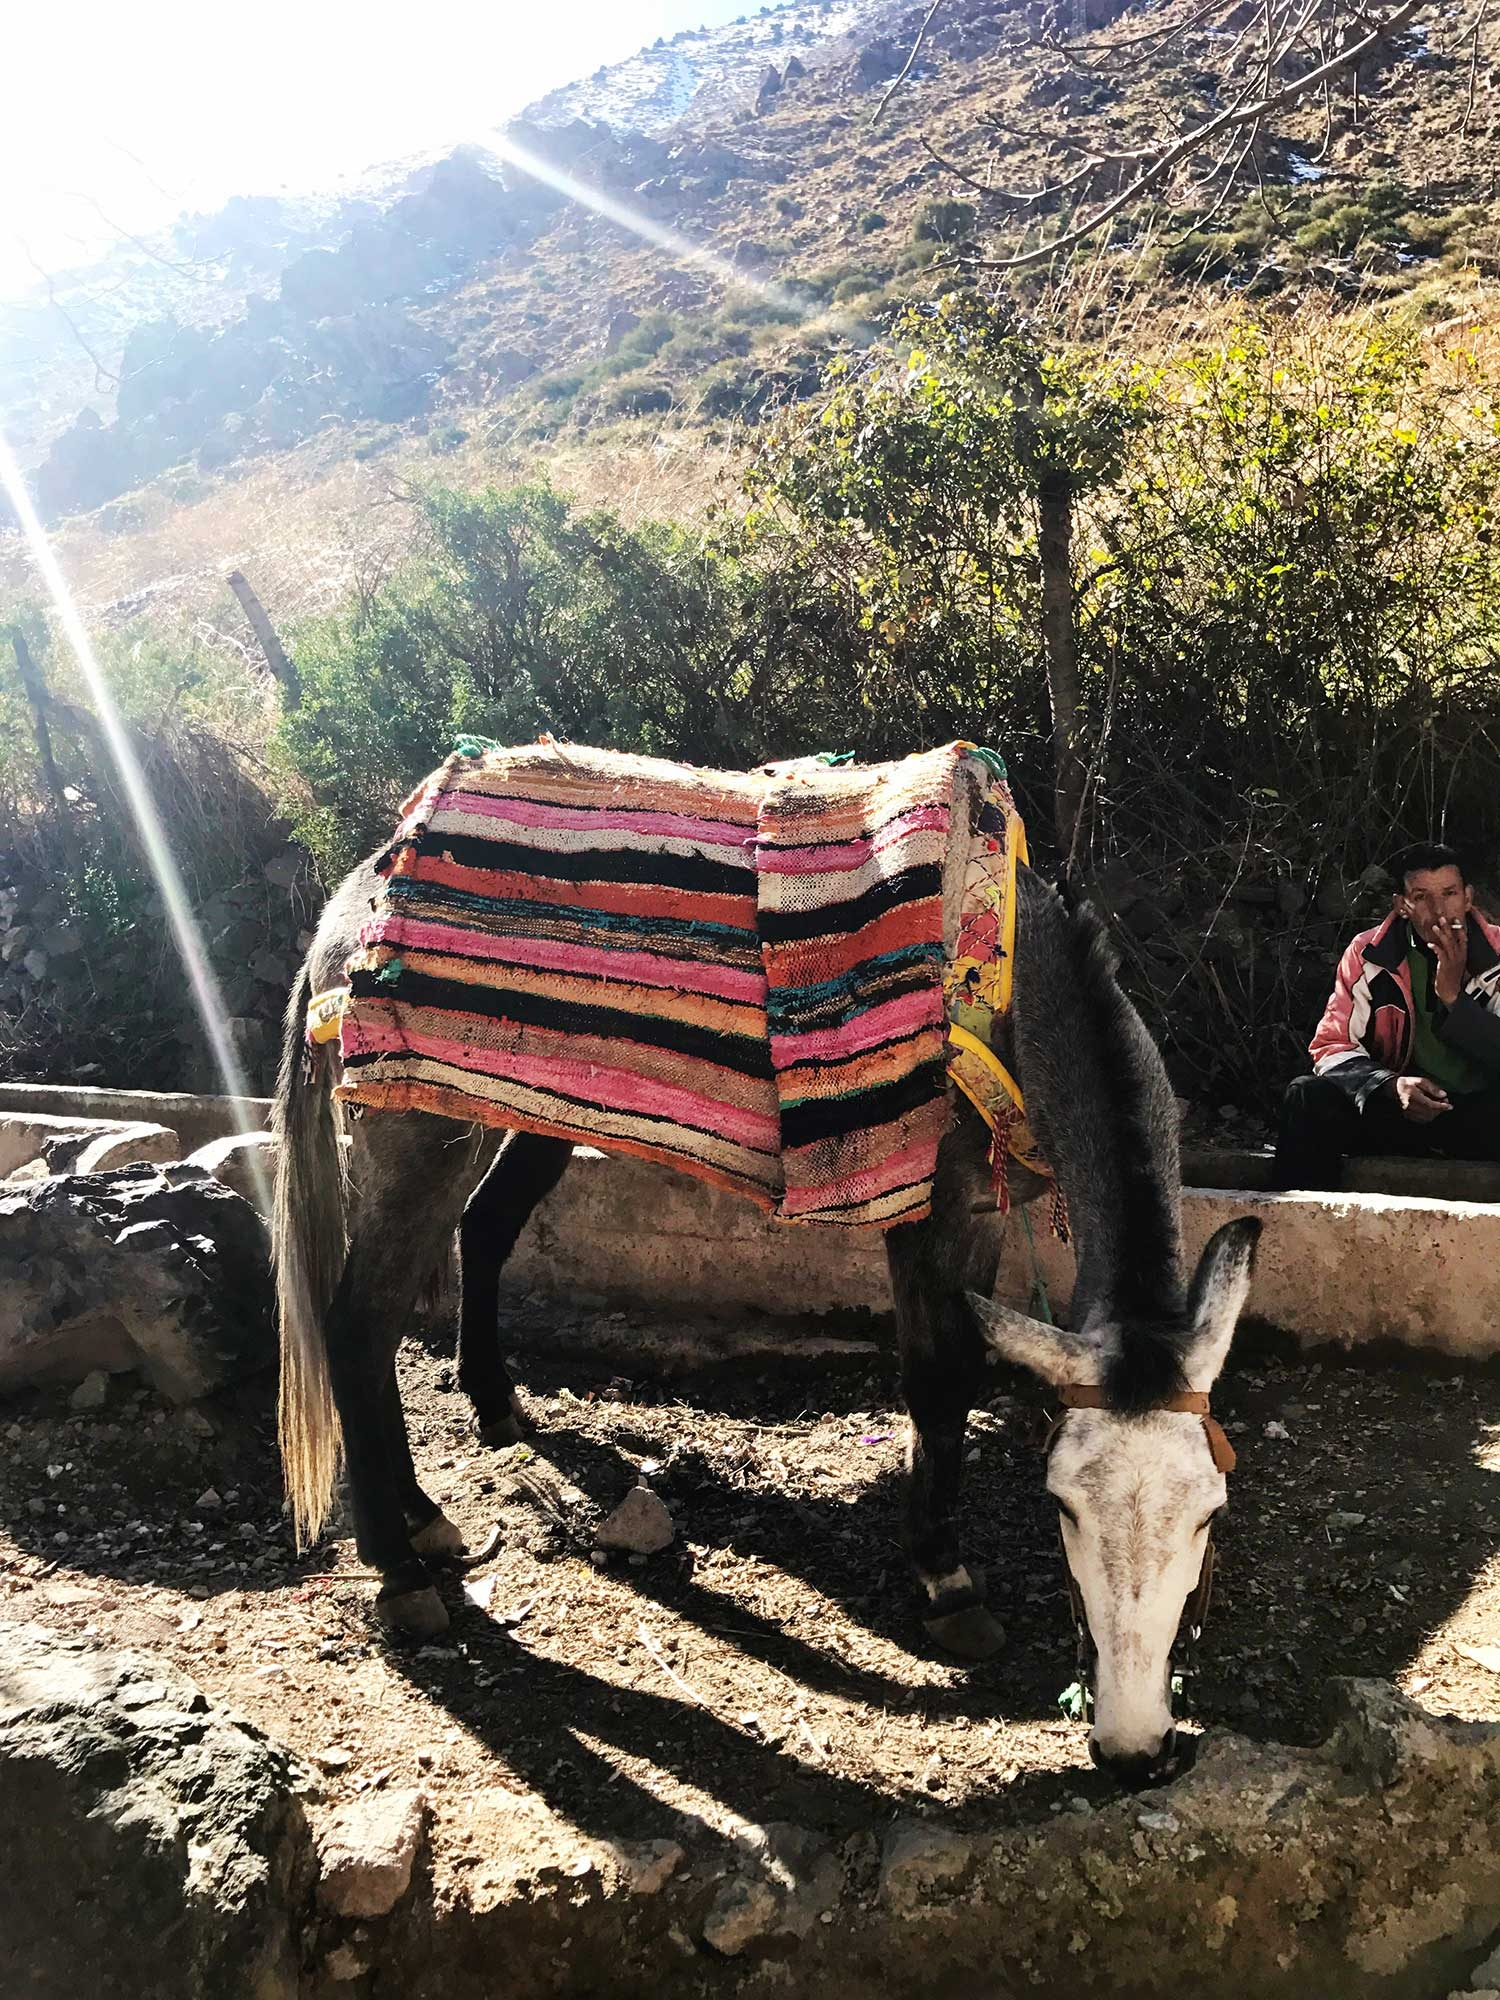 A donkey with a colourful rug on its back stands by the base of a mountain